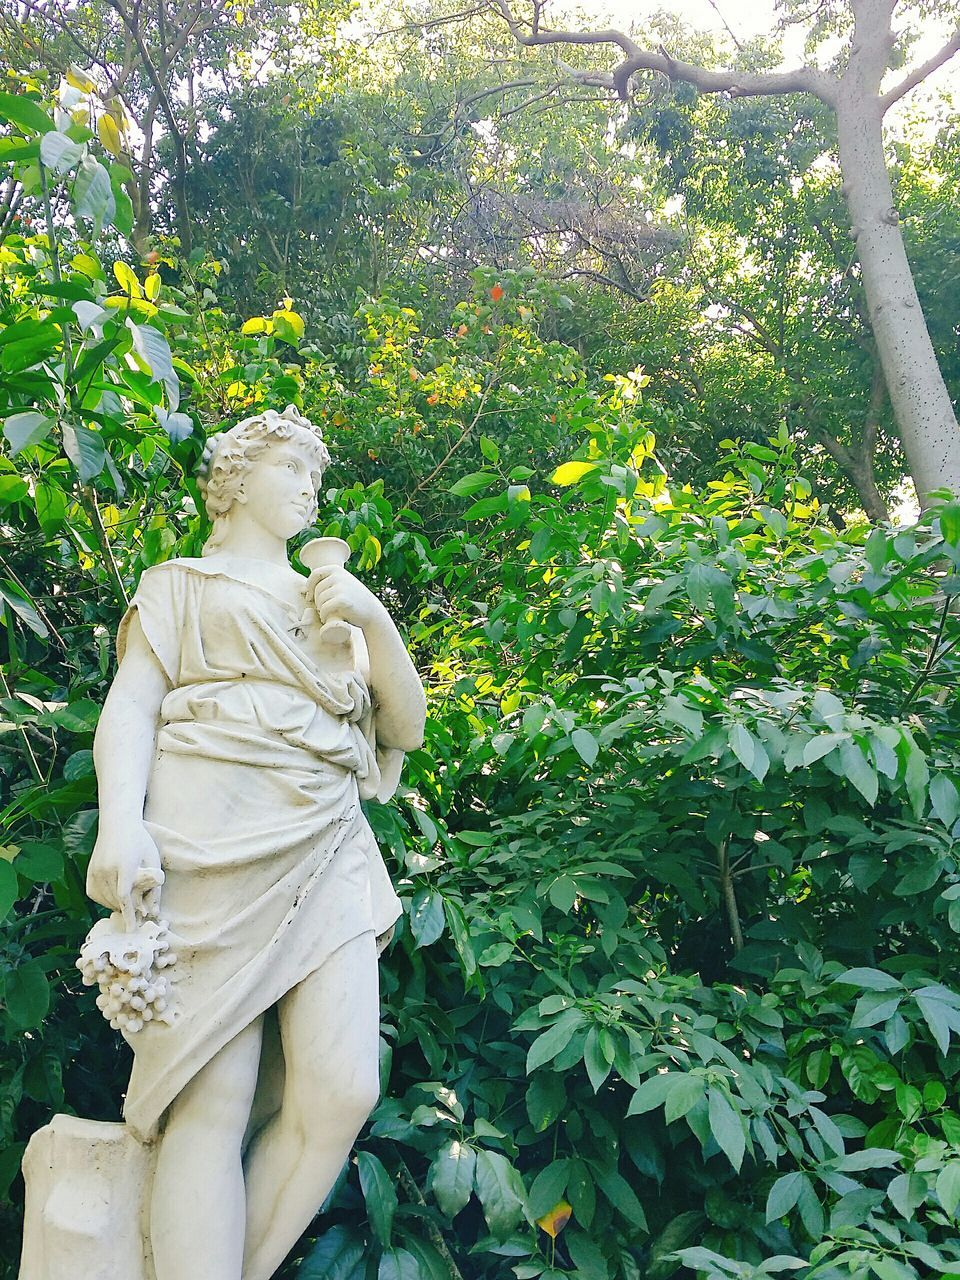 statue, human representation, male likeness, sculpture, female likeness, day, tree, outdoors, no people, growth, nature